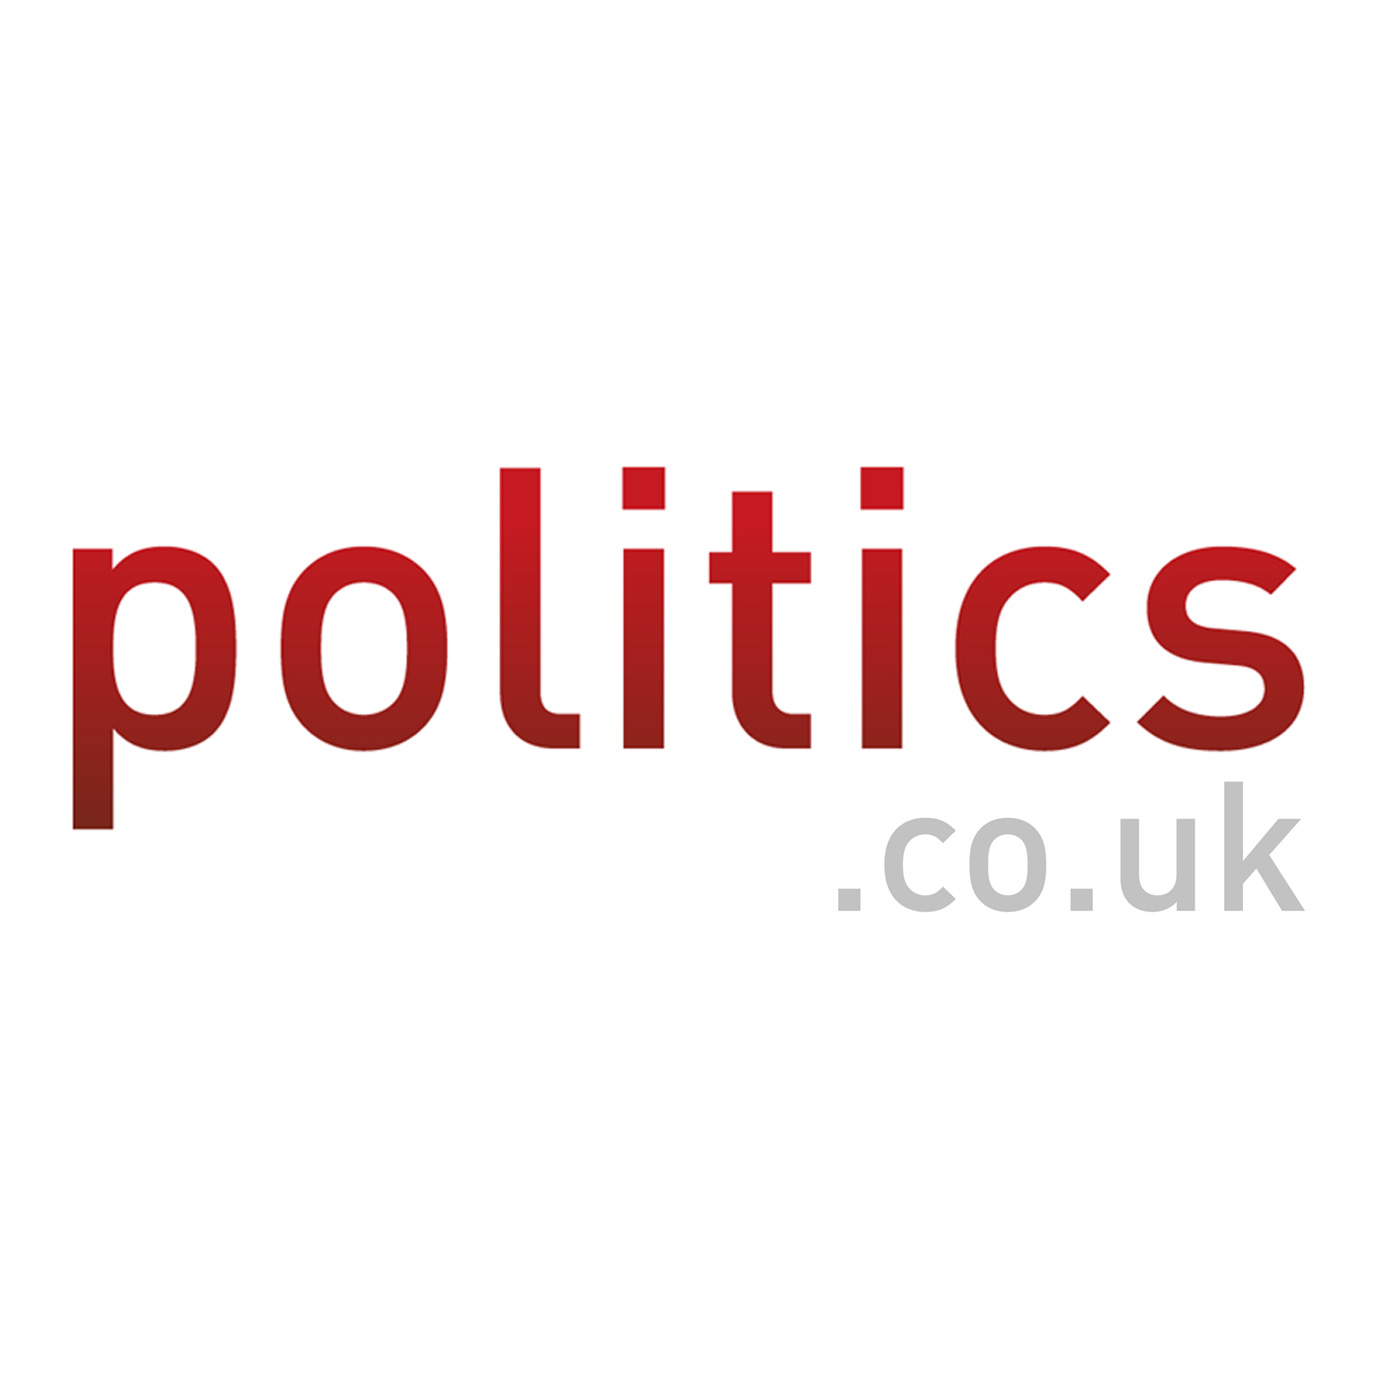 Politics.co.uk vs Westminster